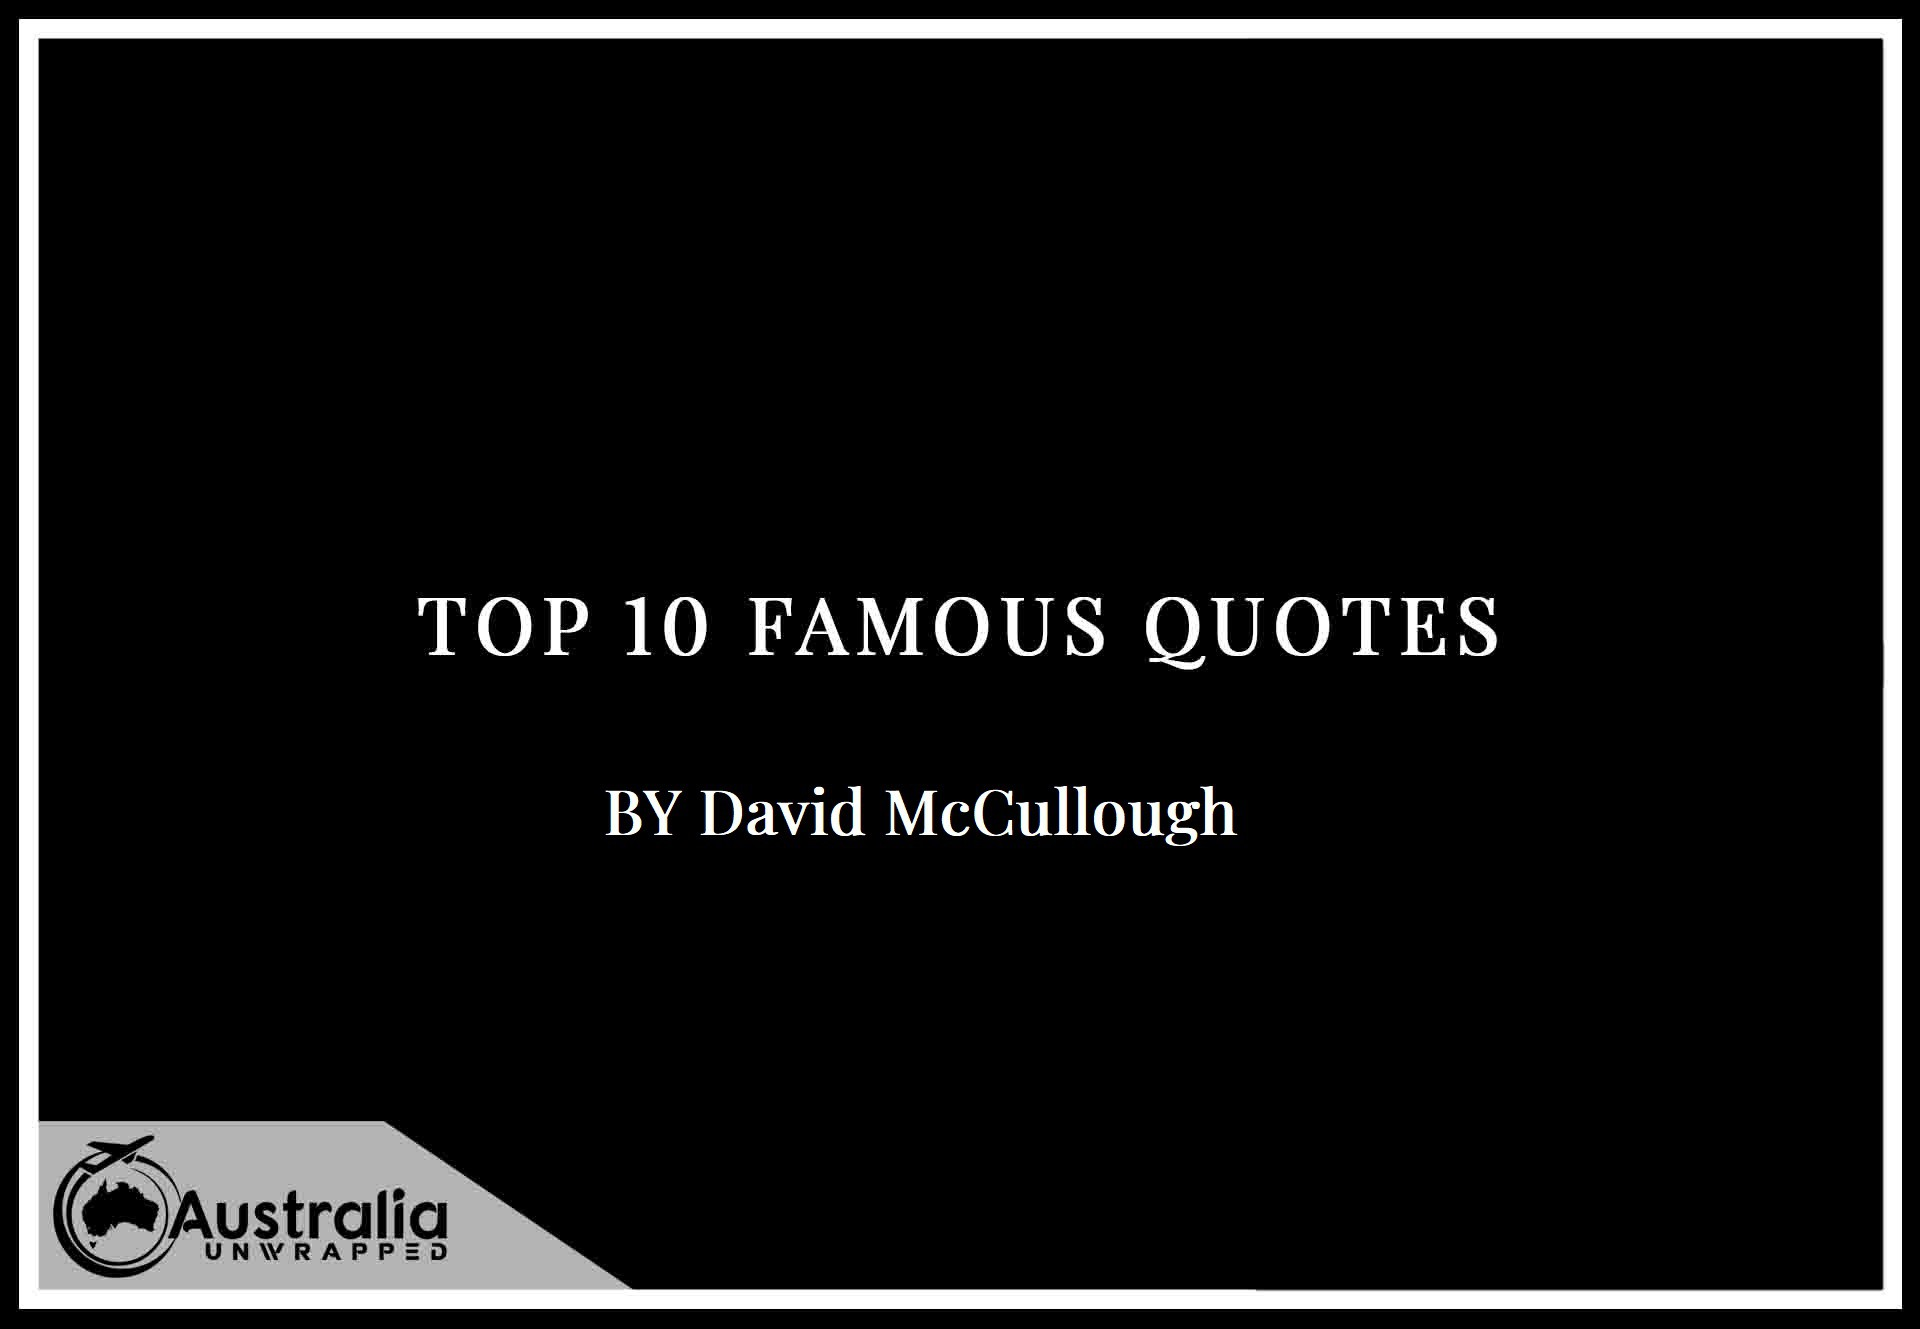 Top 10 Famous Quotes by Author David McCullough